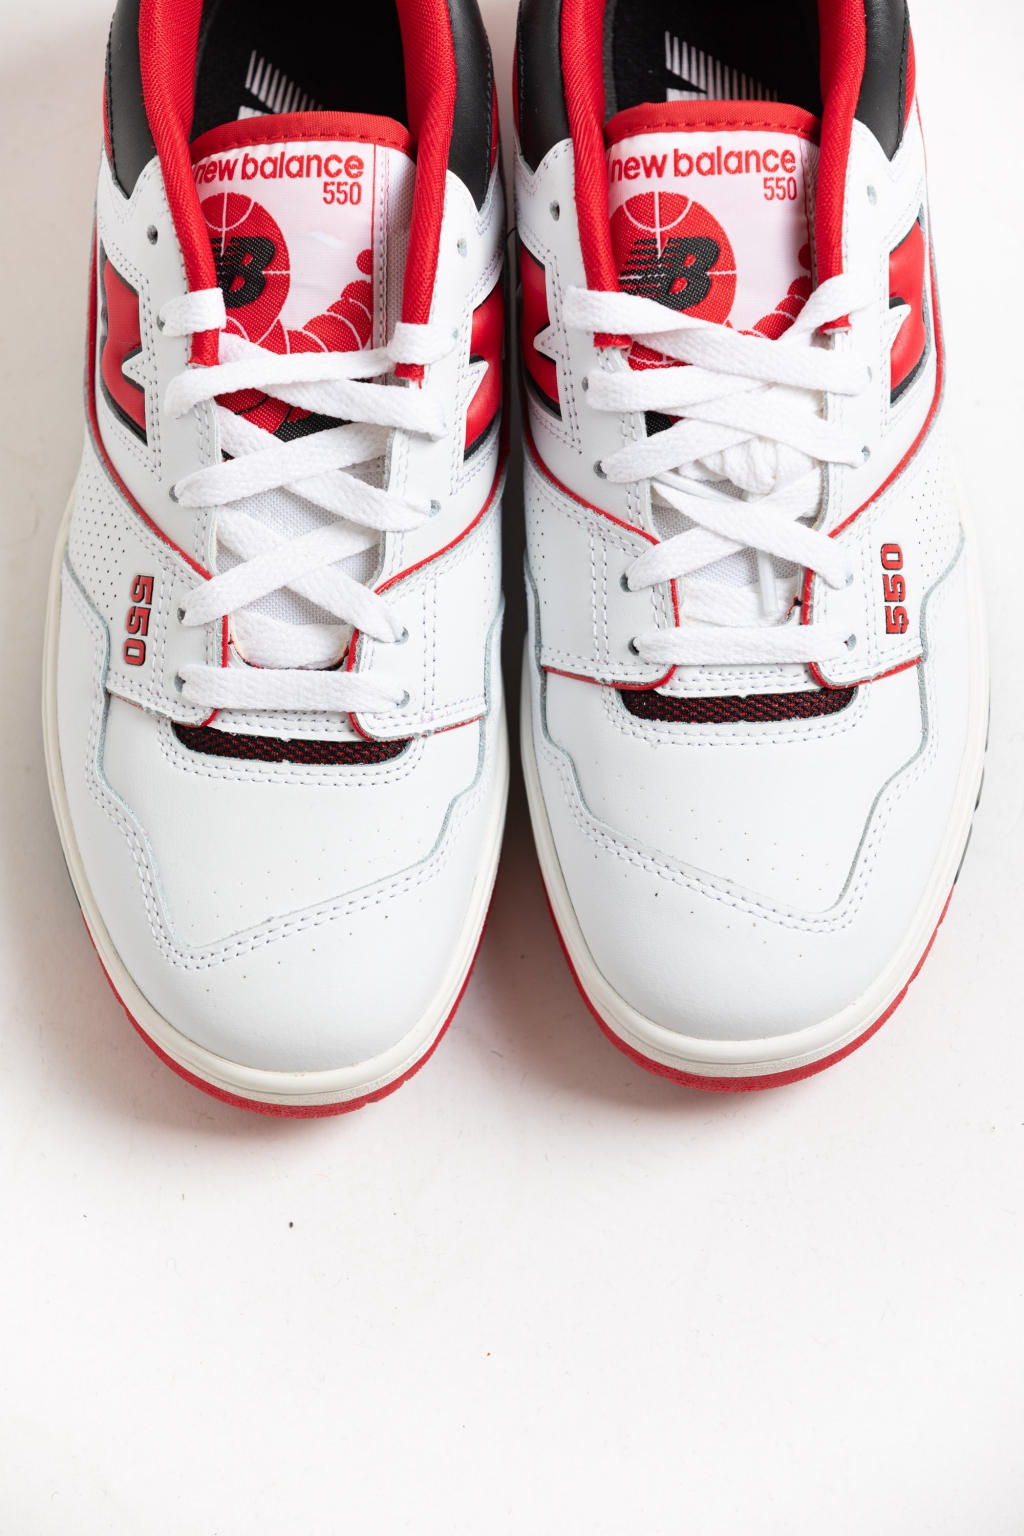 New Balance 550 White-Red in store!ce